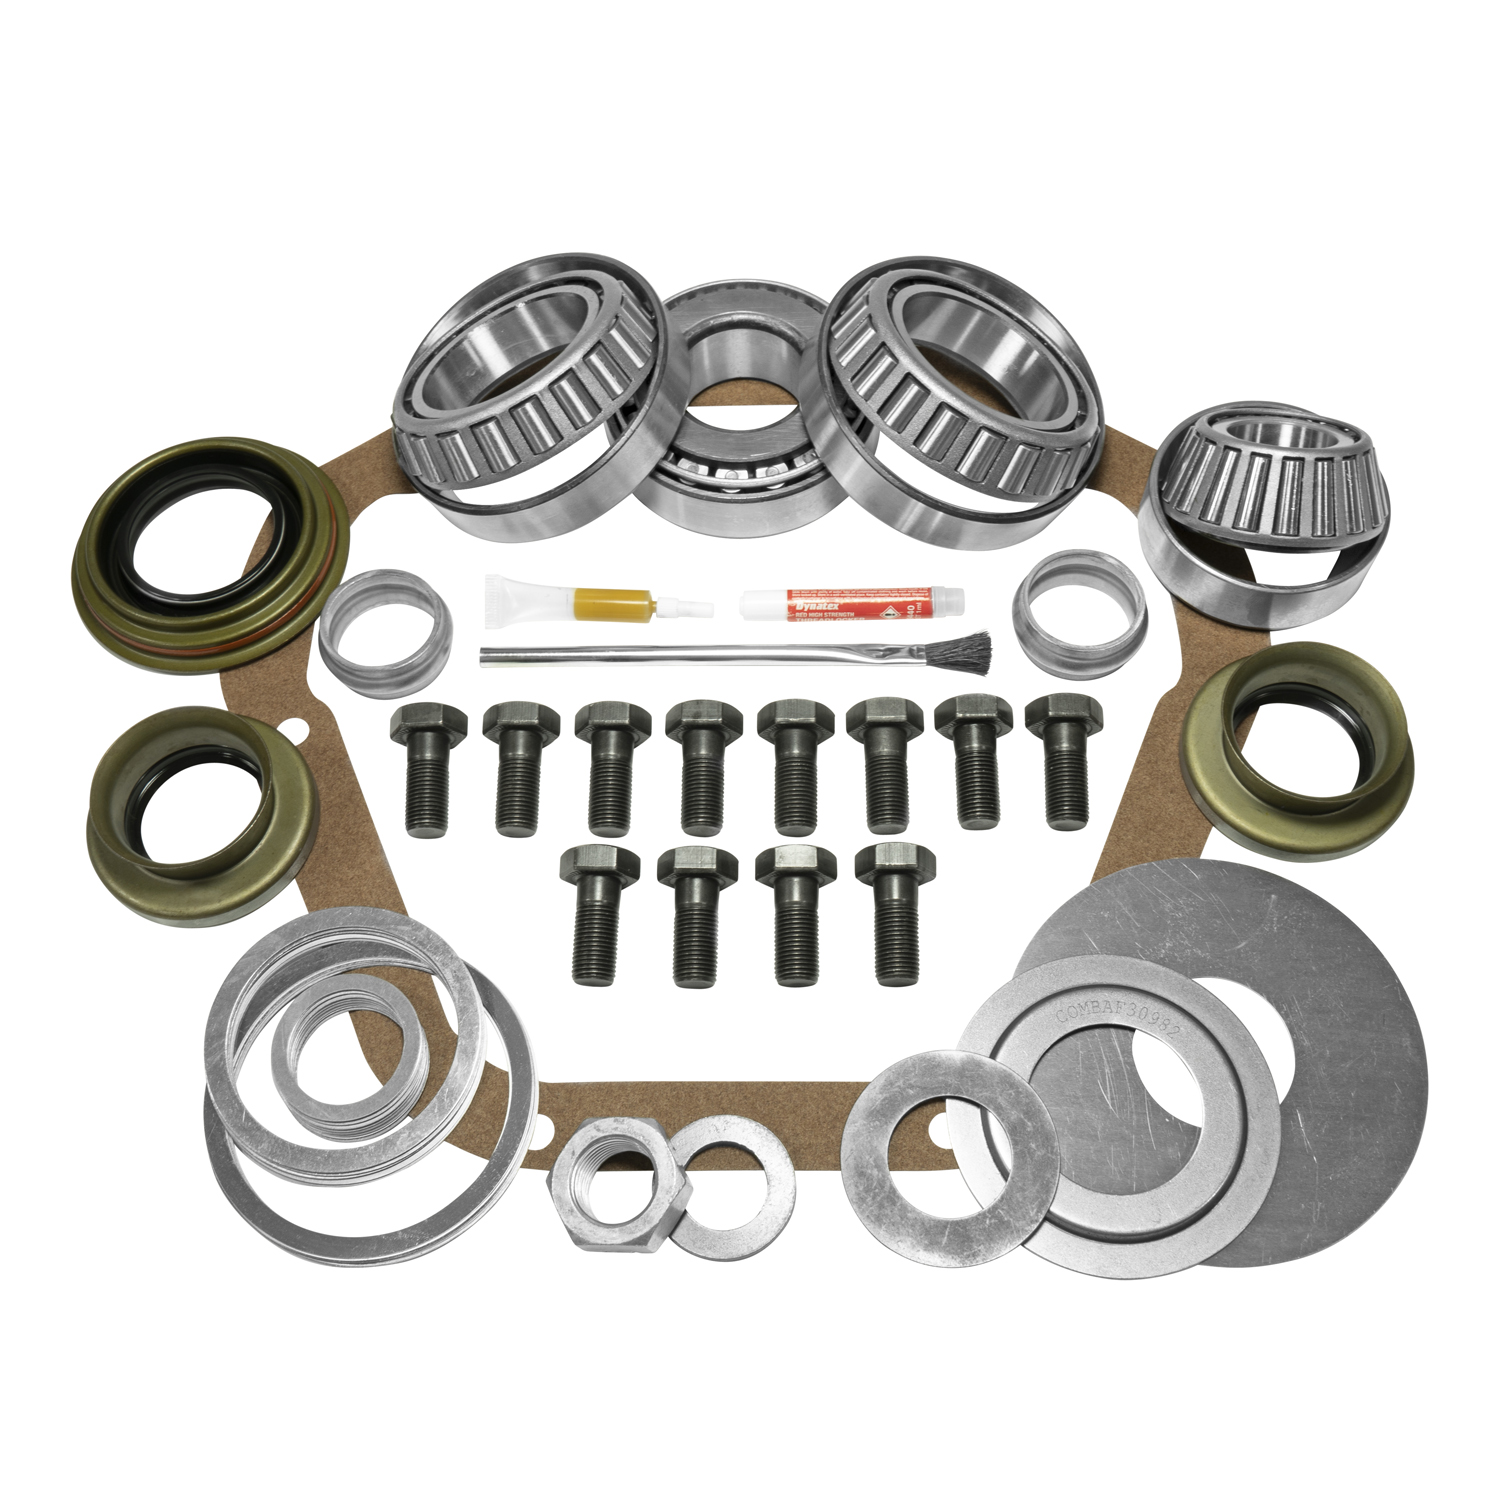 YK D60-F - Yukon Master Overhaul kit for Dana 60 and 61 front differential